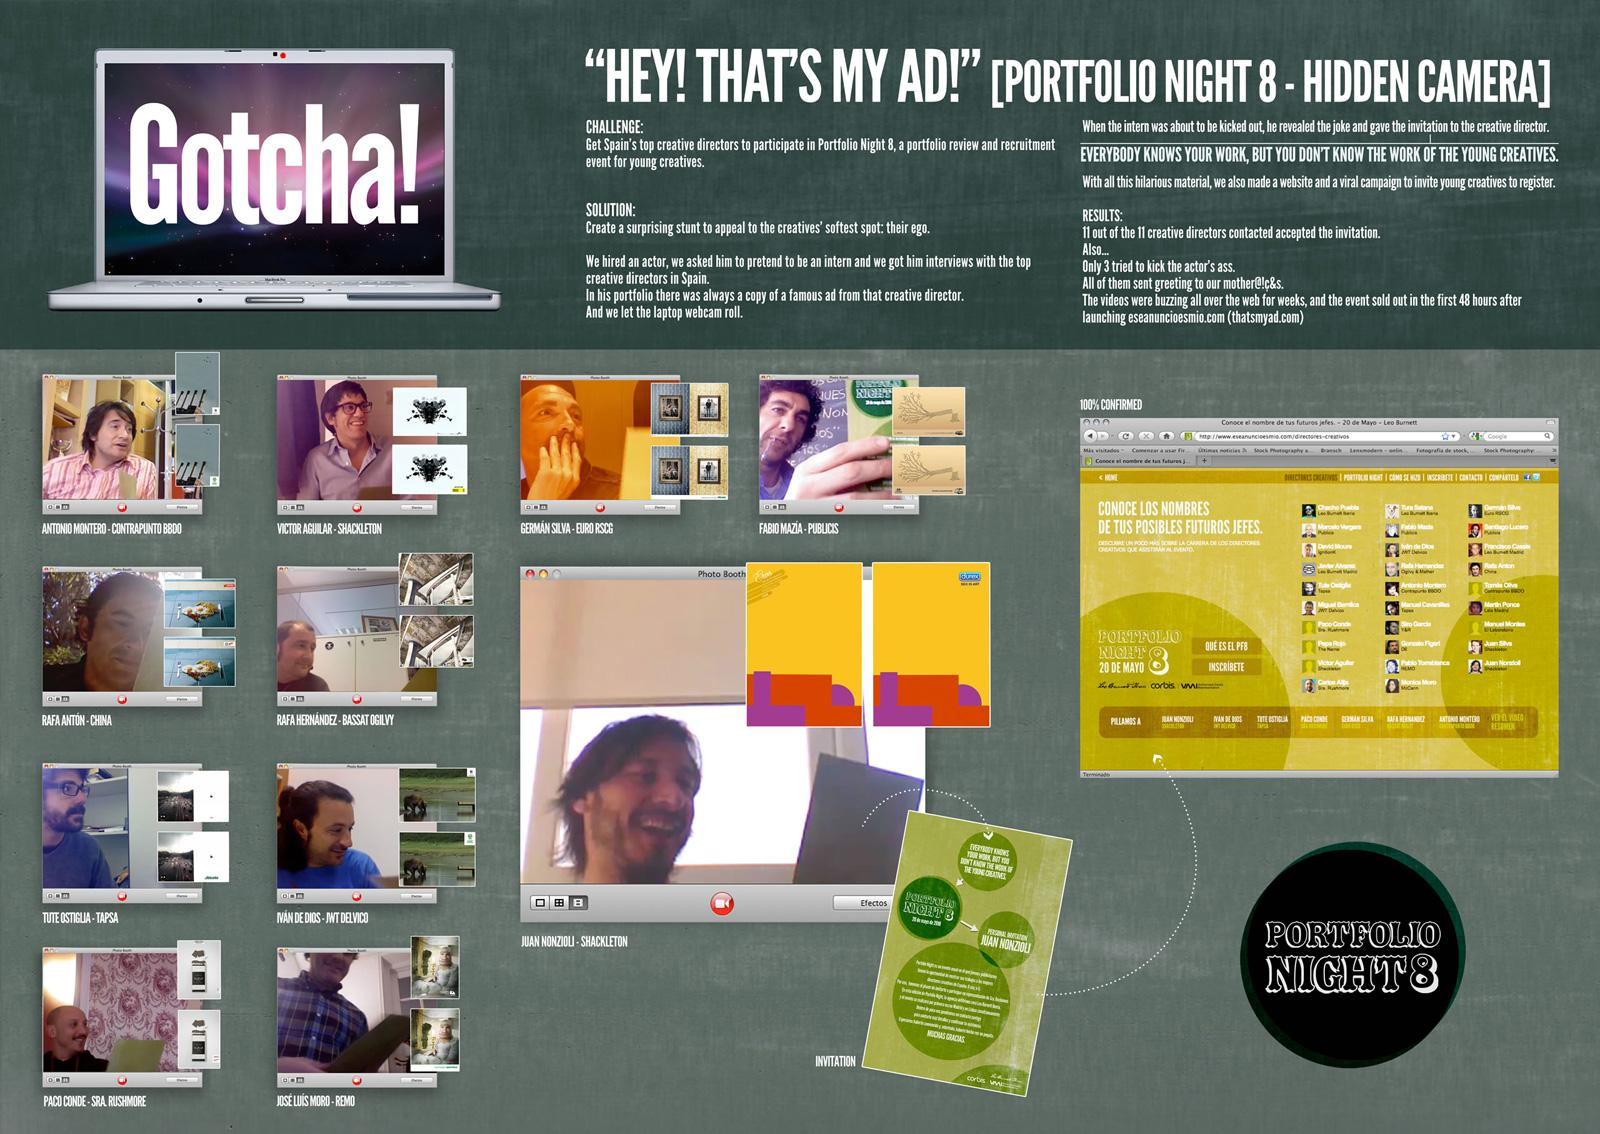 Portfolio Night Digital Ad -  Hey! That's My Ad